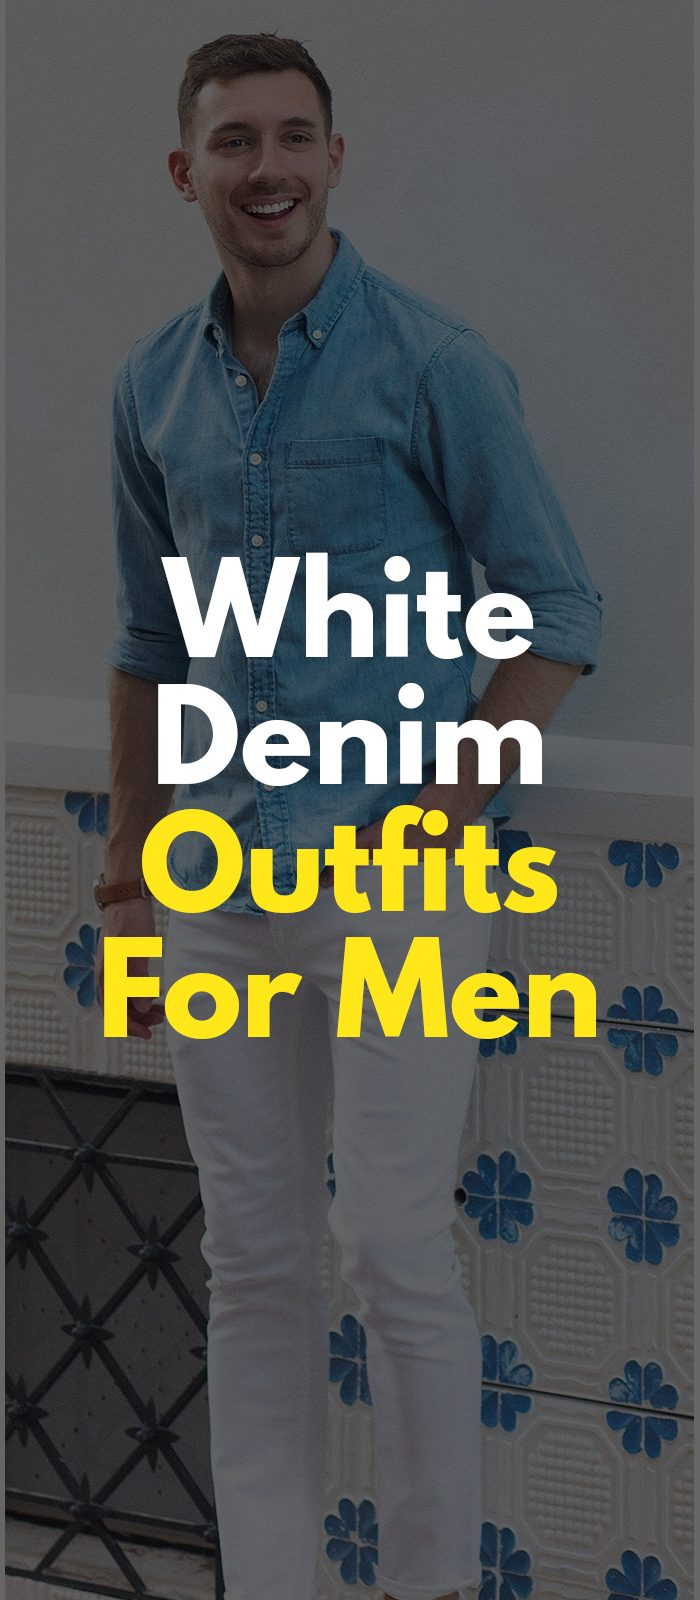 White Denim Outfits For Men